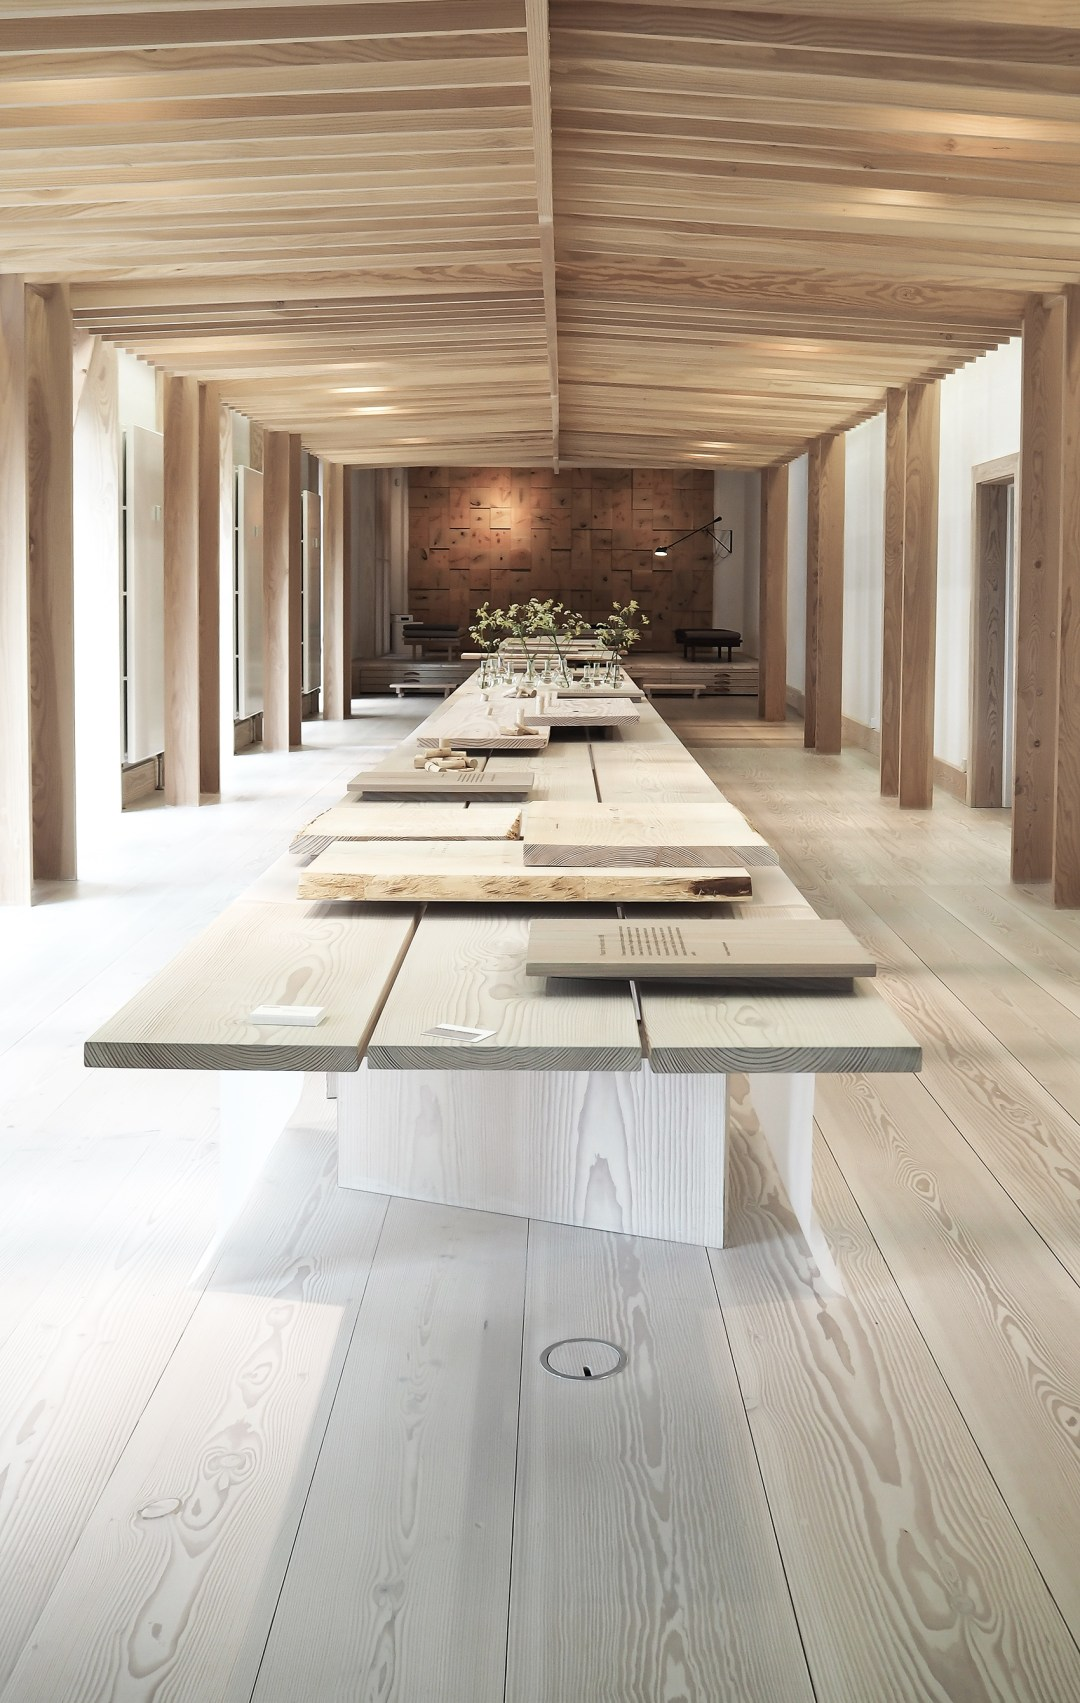 3 days of design - Dinesen